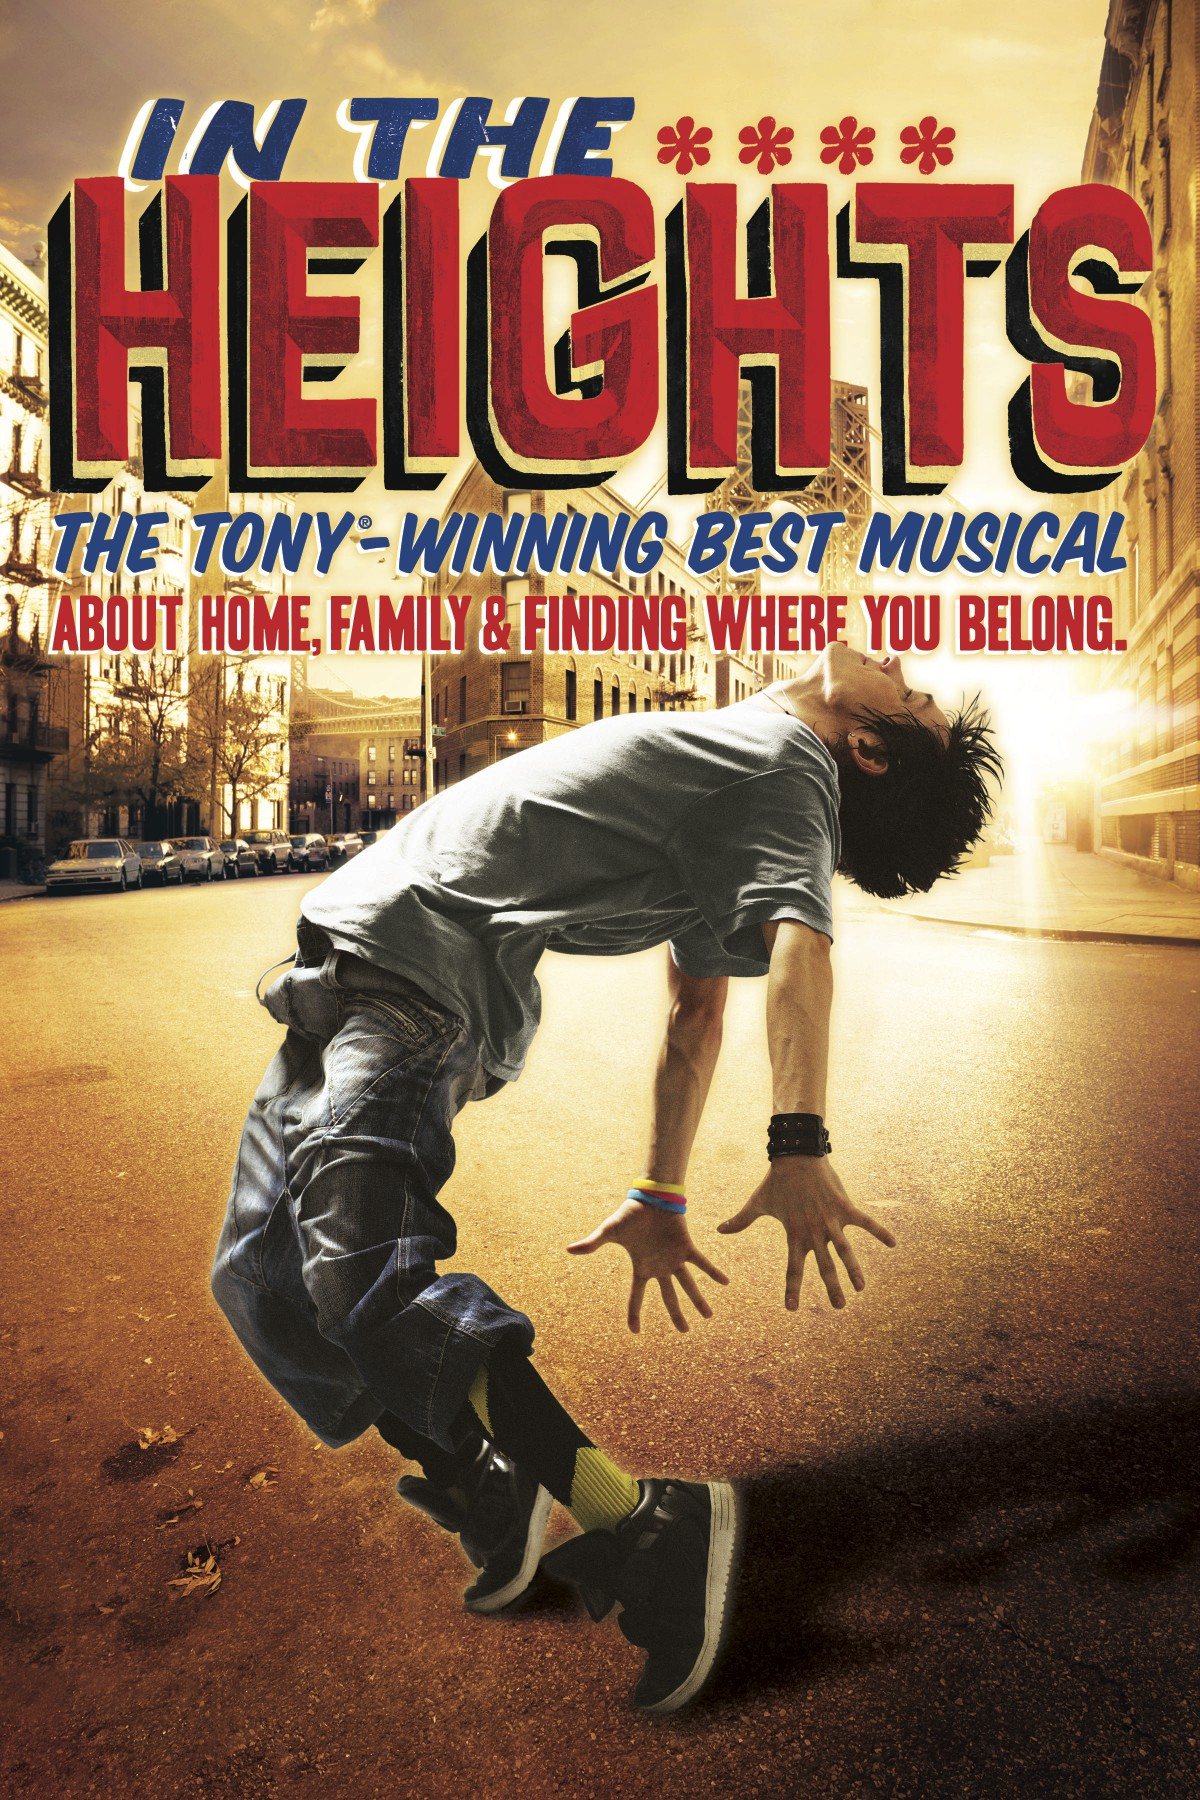 New York Poster Upc, Ias, And Arts For All Present In The Heights: Free